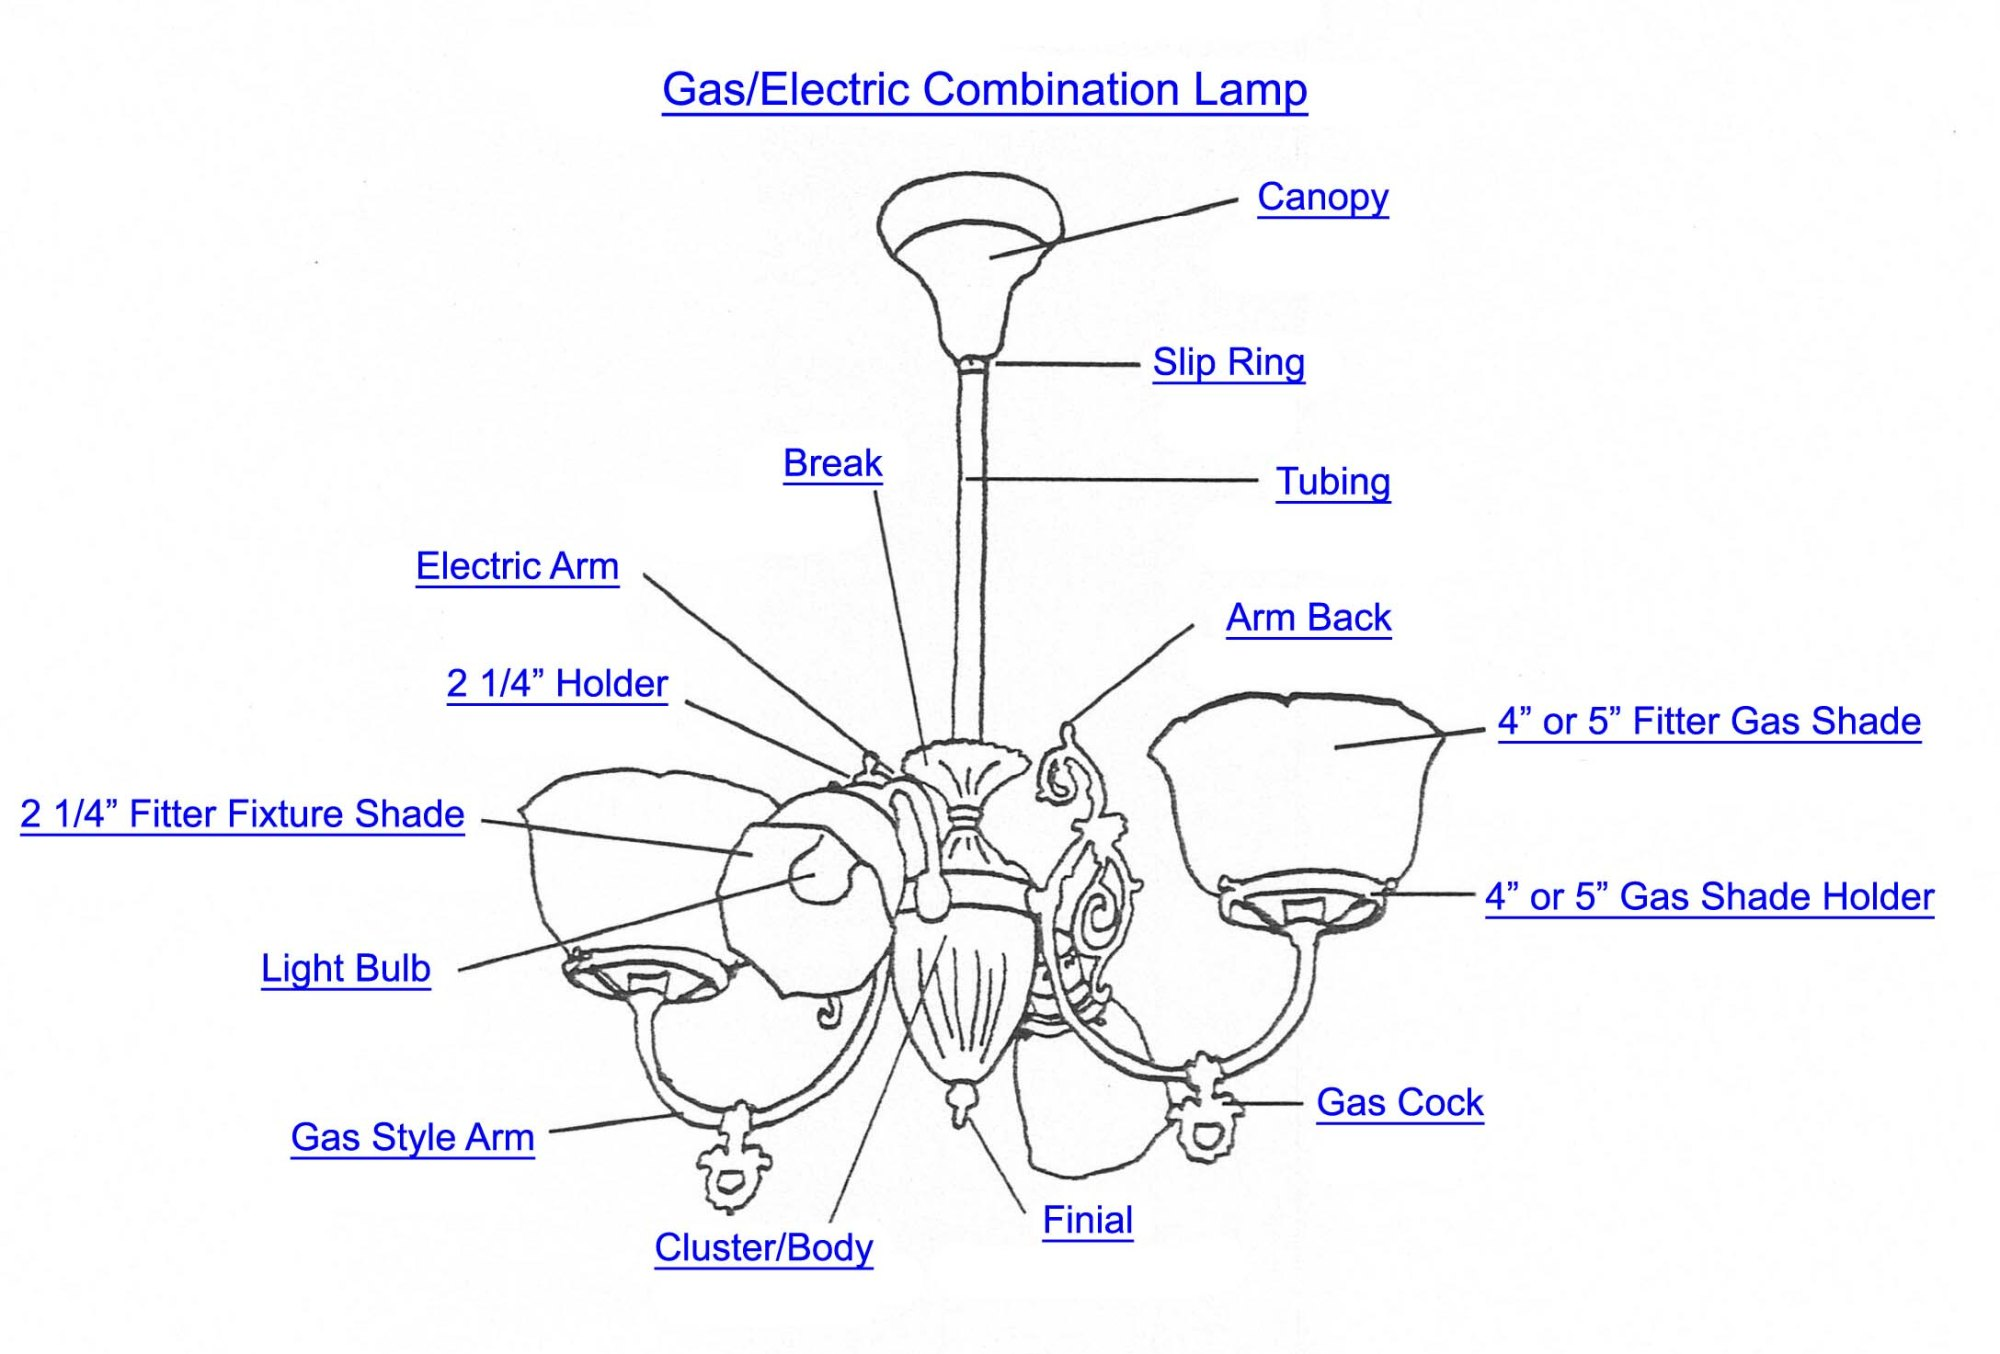 hight resolution of gas electric combination lamp part index diagram of a combination gas and electric chandelier at the antique